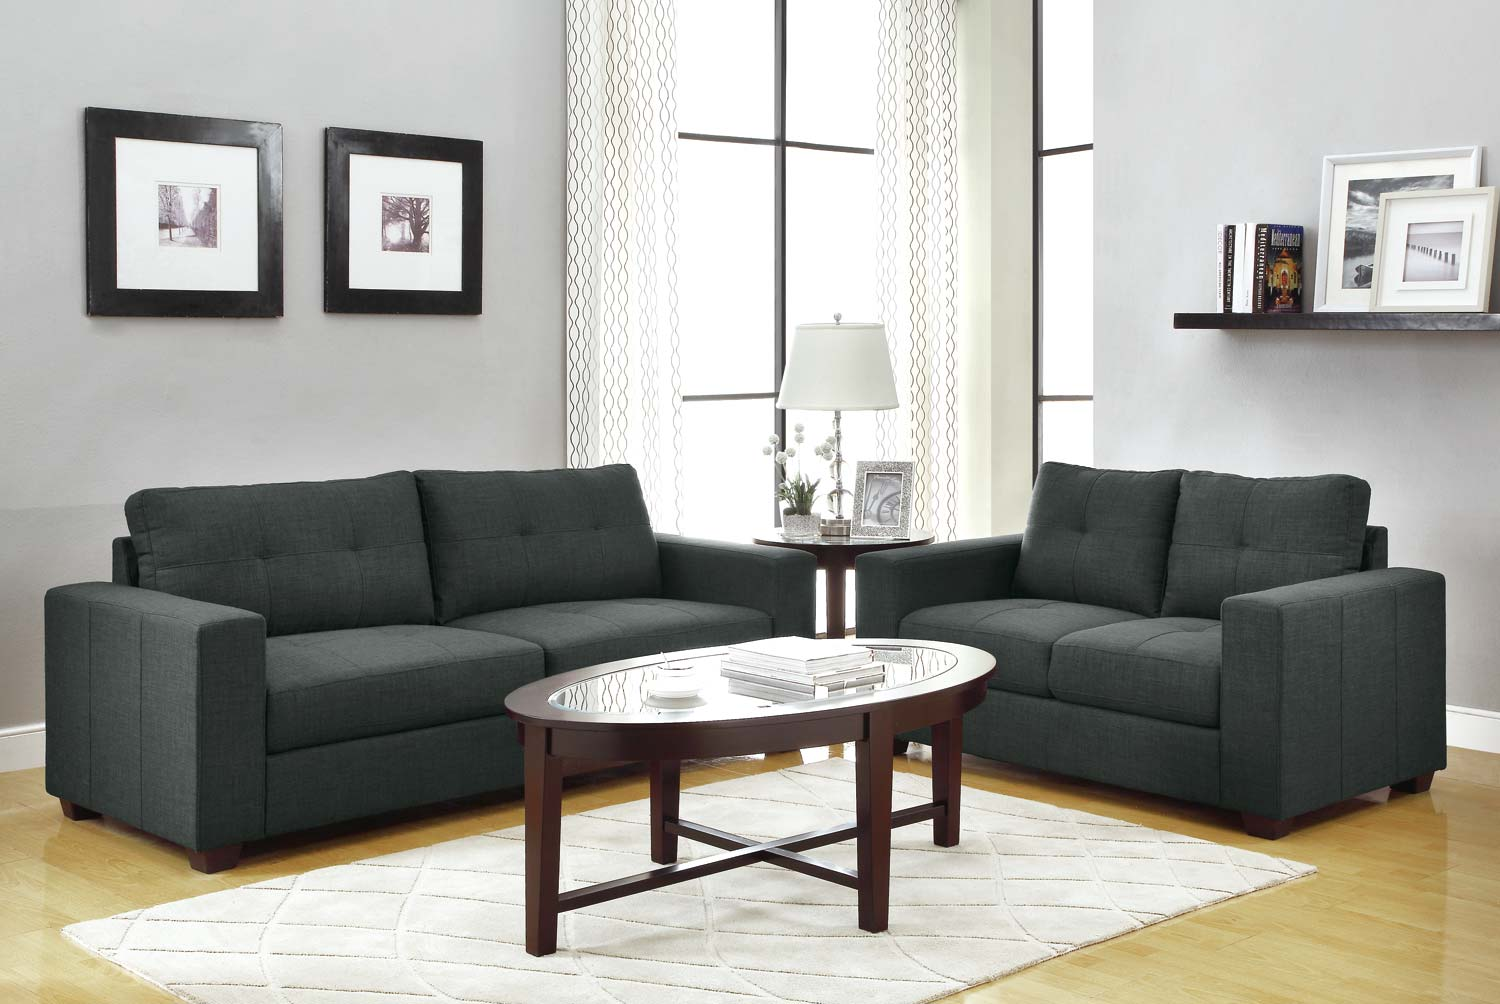 Homelegance Ashmont Sofa Set   Dark Grey   Linen